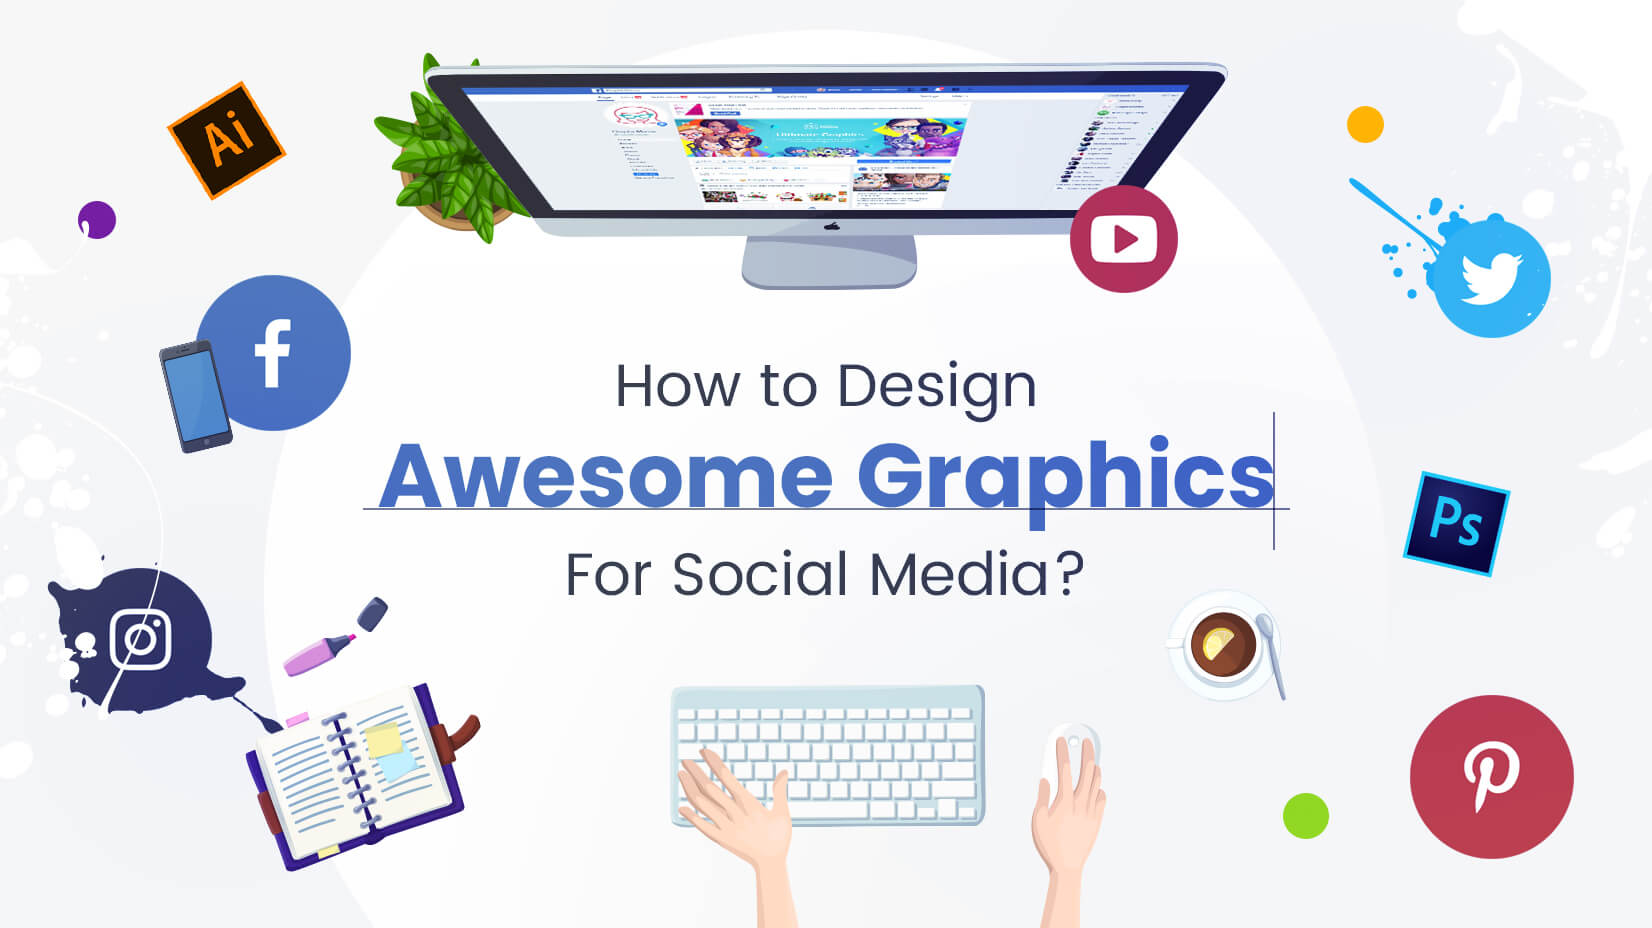 How to Design Awesome Graphics For Social Media: The Must-Read Guide